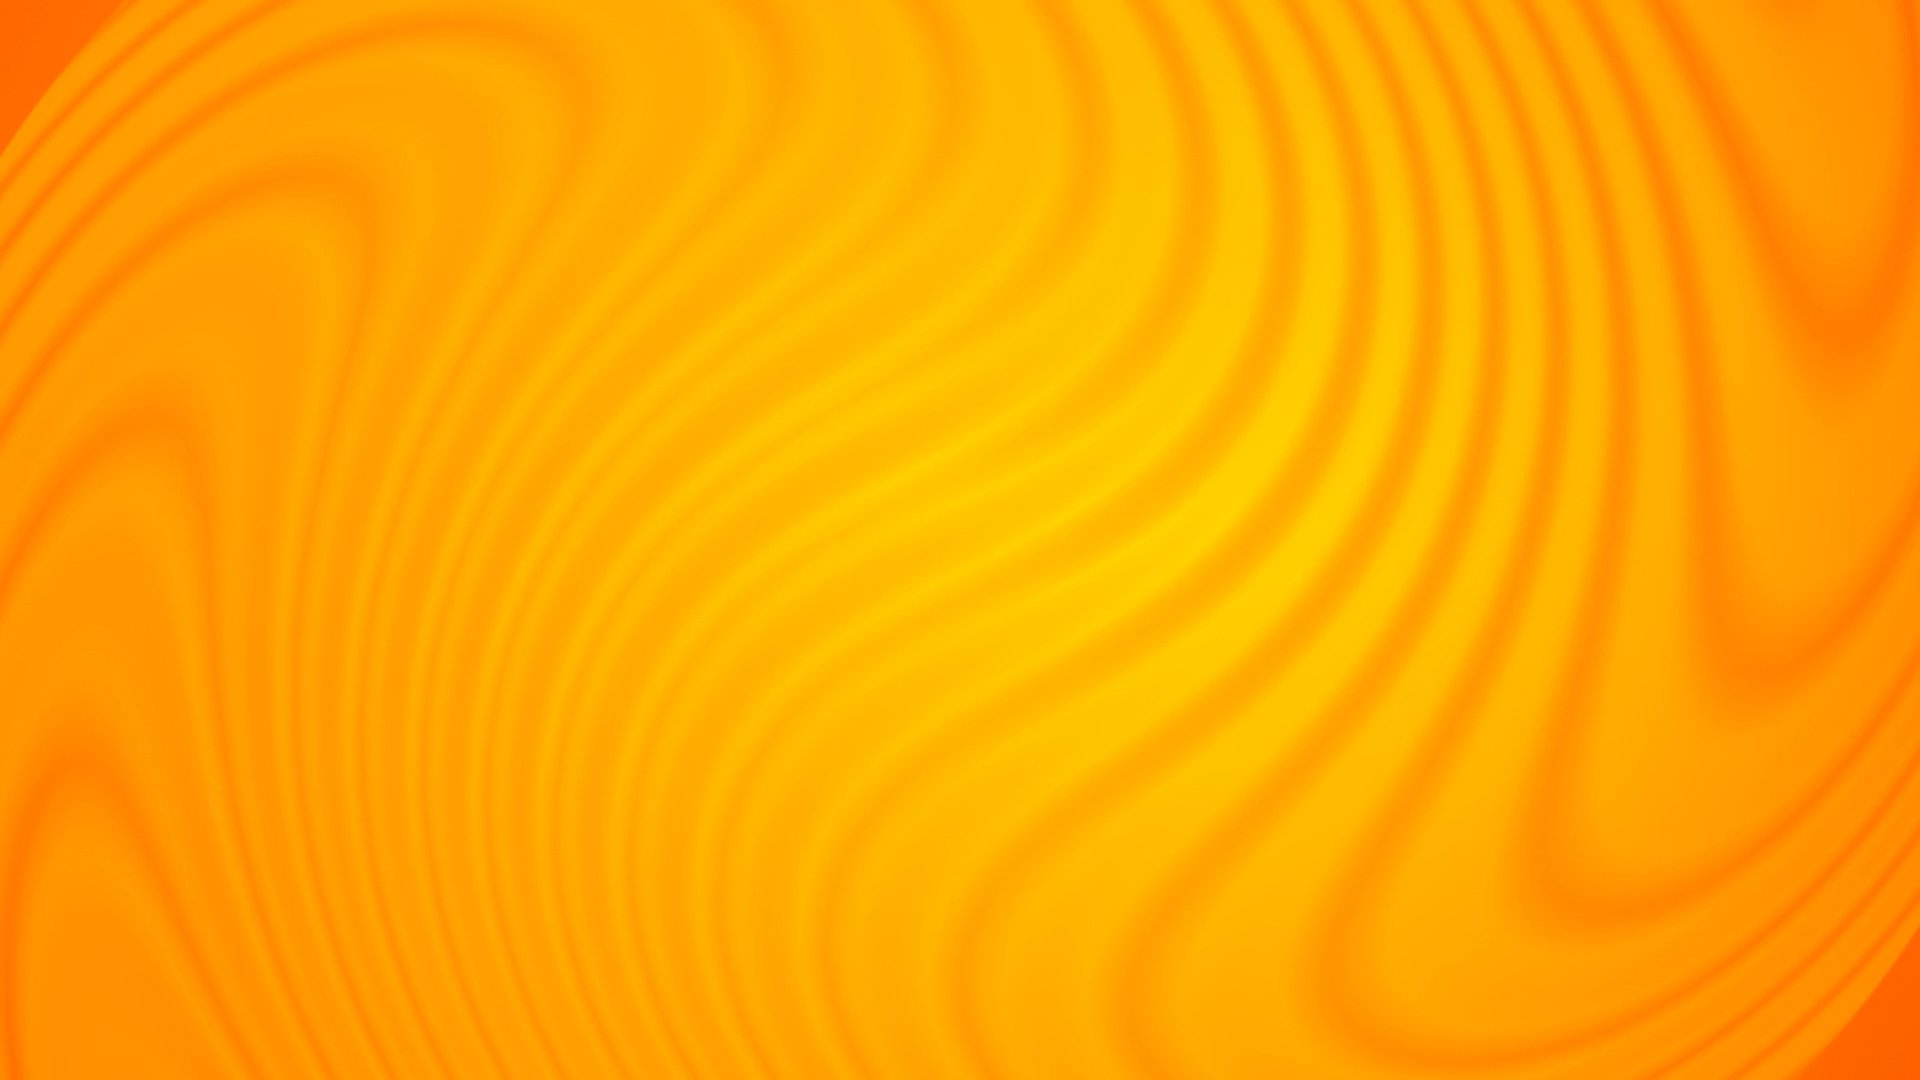 46+ Abstract Orange Wallpaper on WallpaperSafari